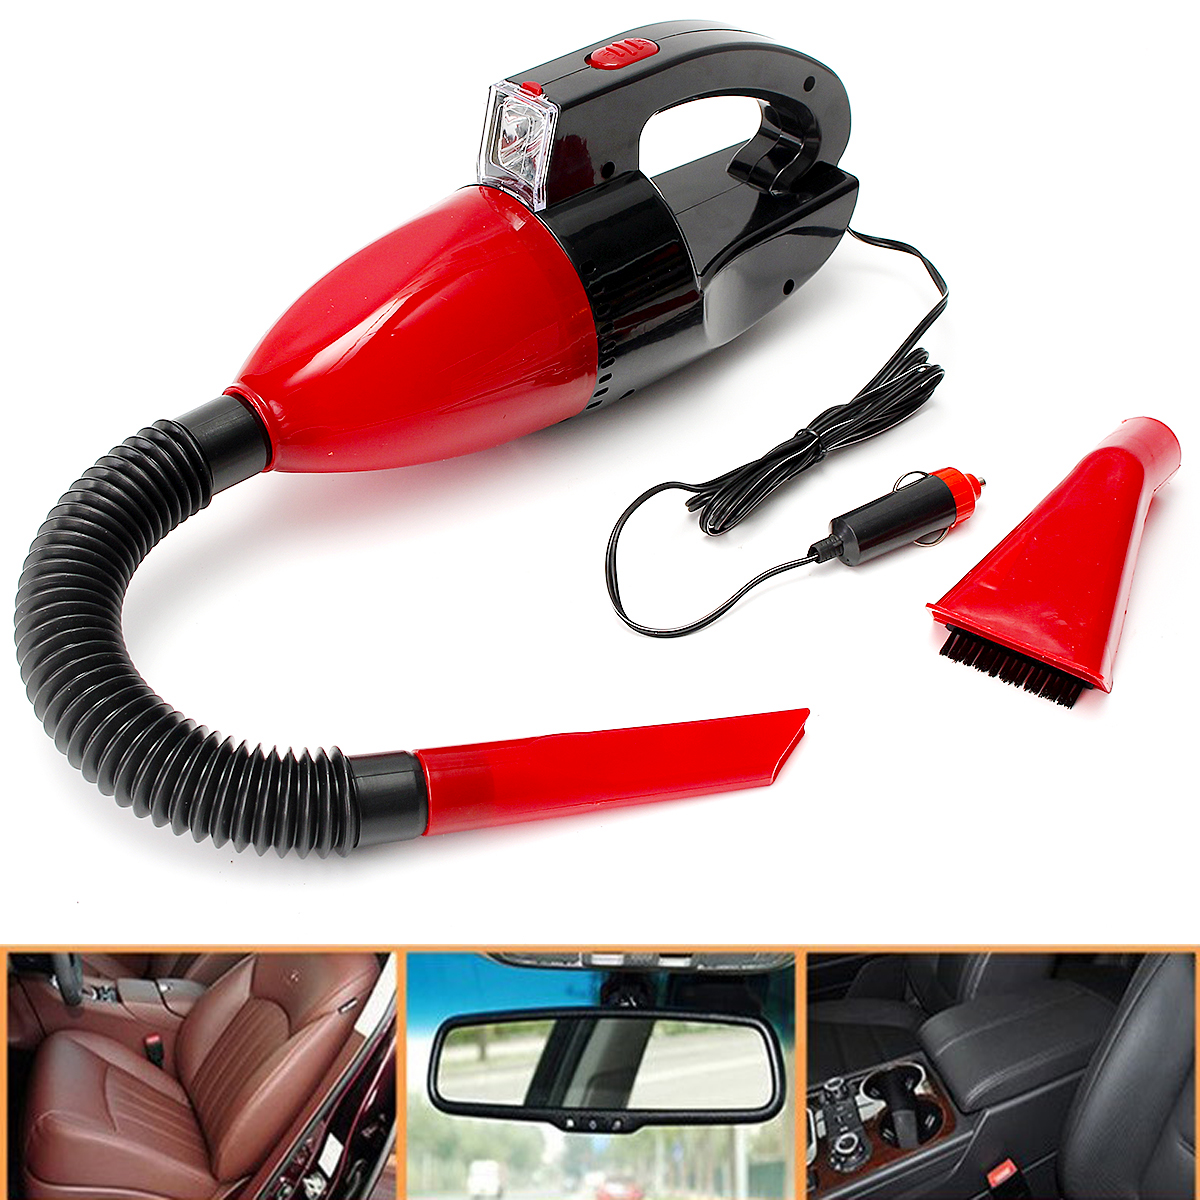 12V Vacuum Cleaner for Car Auto Dry Wet Dust Dirt Handheld Hand Mini Portable Red Vacuum Cleaner Electrical Appliance dbl 370 wet dry car dust vacuum cleaner black white dc 12v